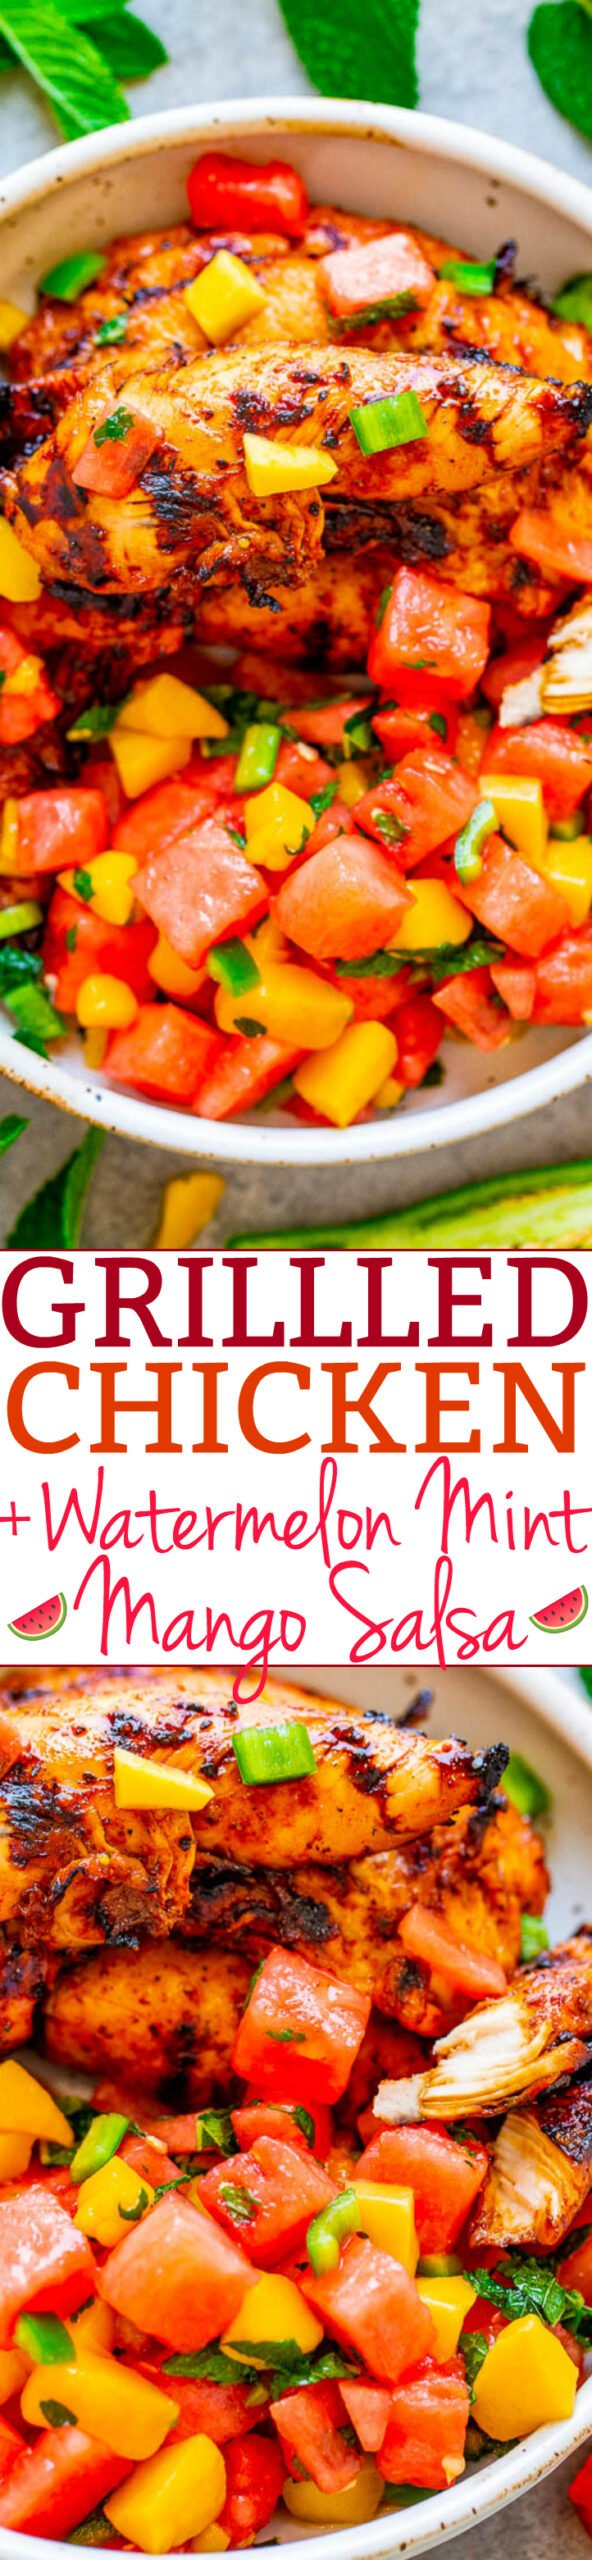 Grilled Chicken and Watermelon Mango Mint Salsa — The chicken is tender, juicy, and the EASY salsa made with watermelon, mango, and mint adds so much fresh FLAVOR!! Healthy, FAST, EASY, zero cleanup, perfect for backyard barbecues or easy weeknight dinners!!